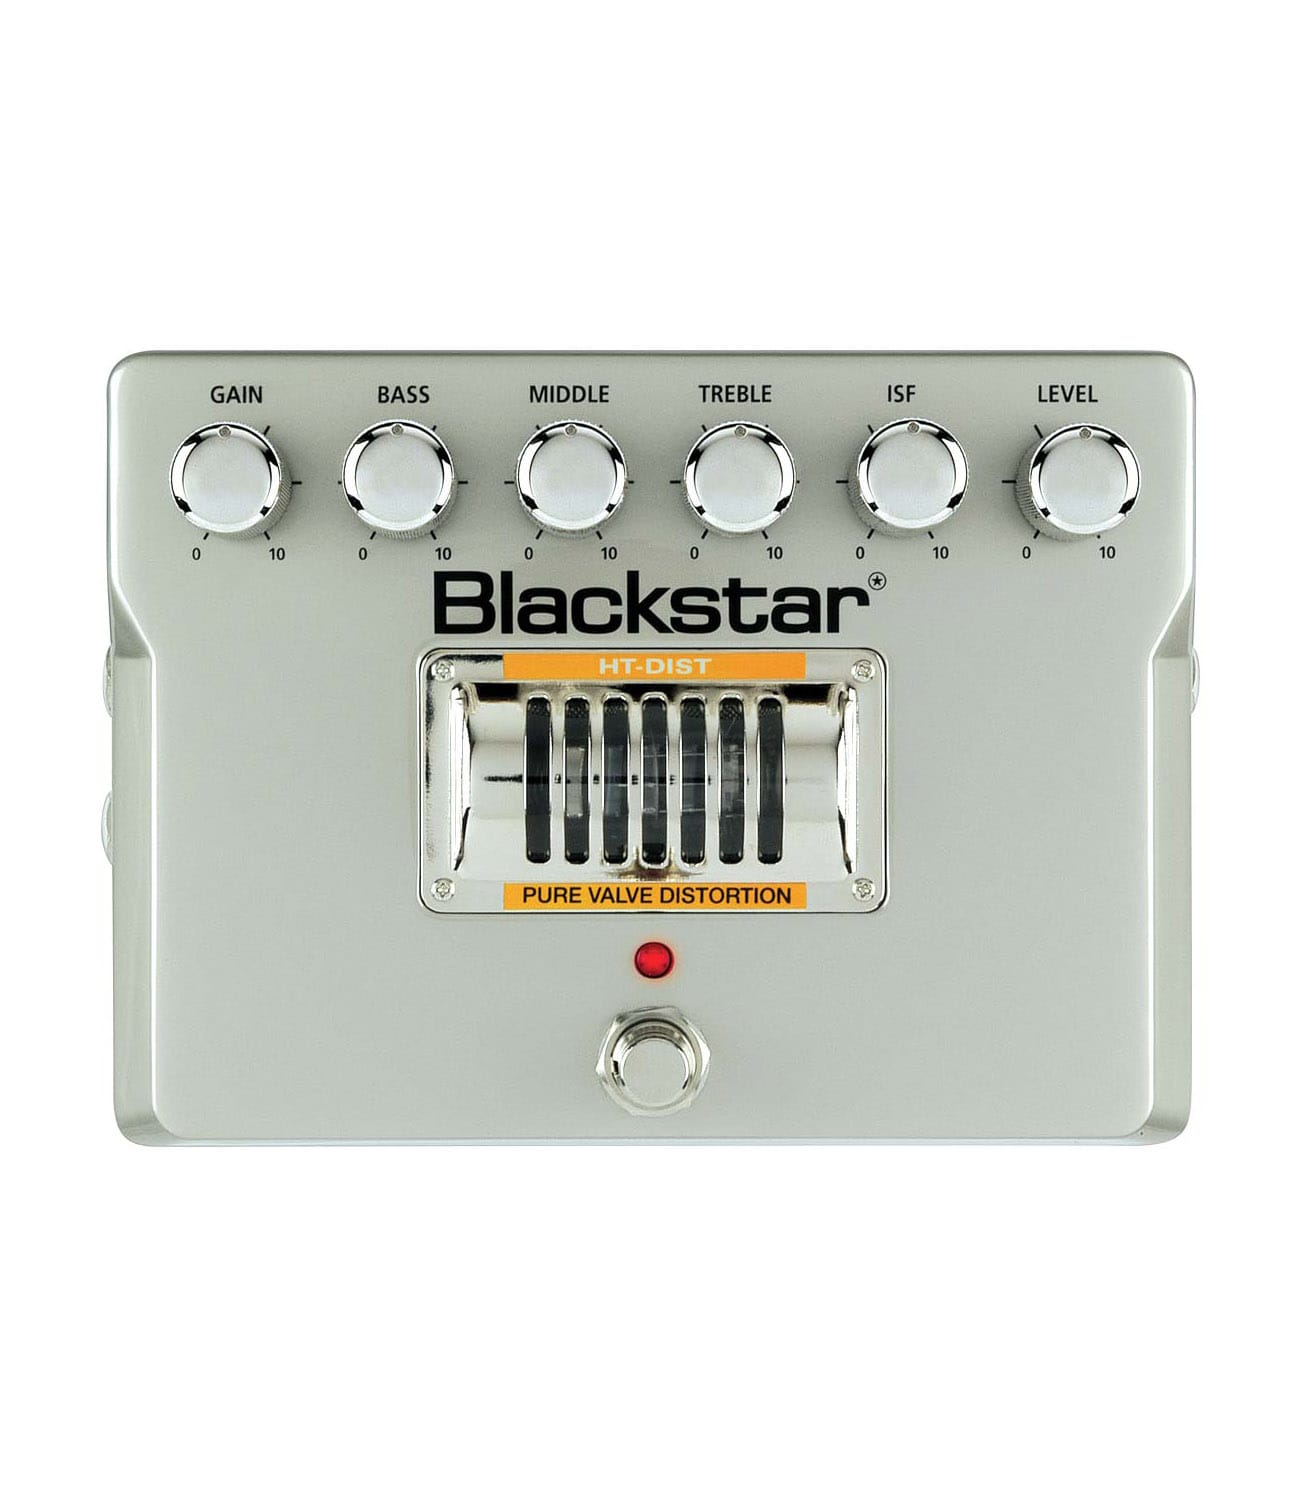 Buy Blackstar - HT Dist Valve Distortion Pedal